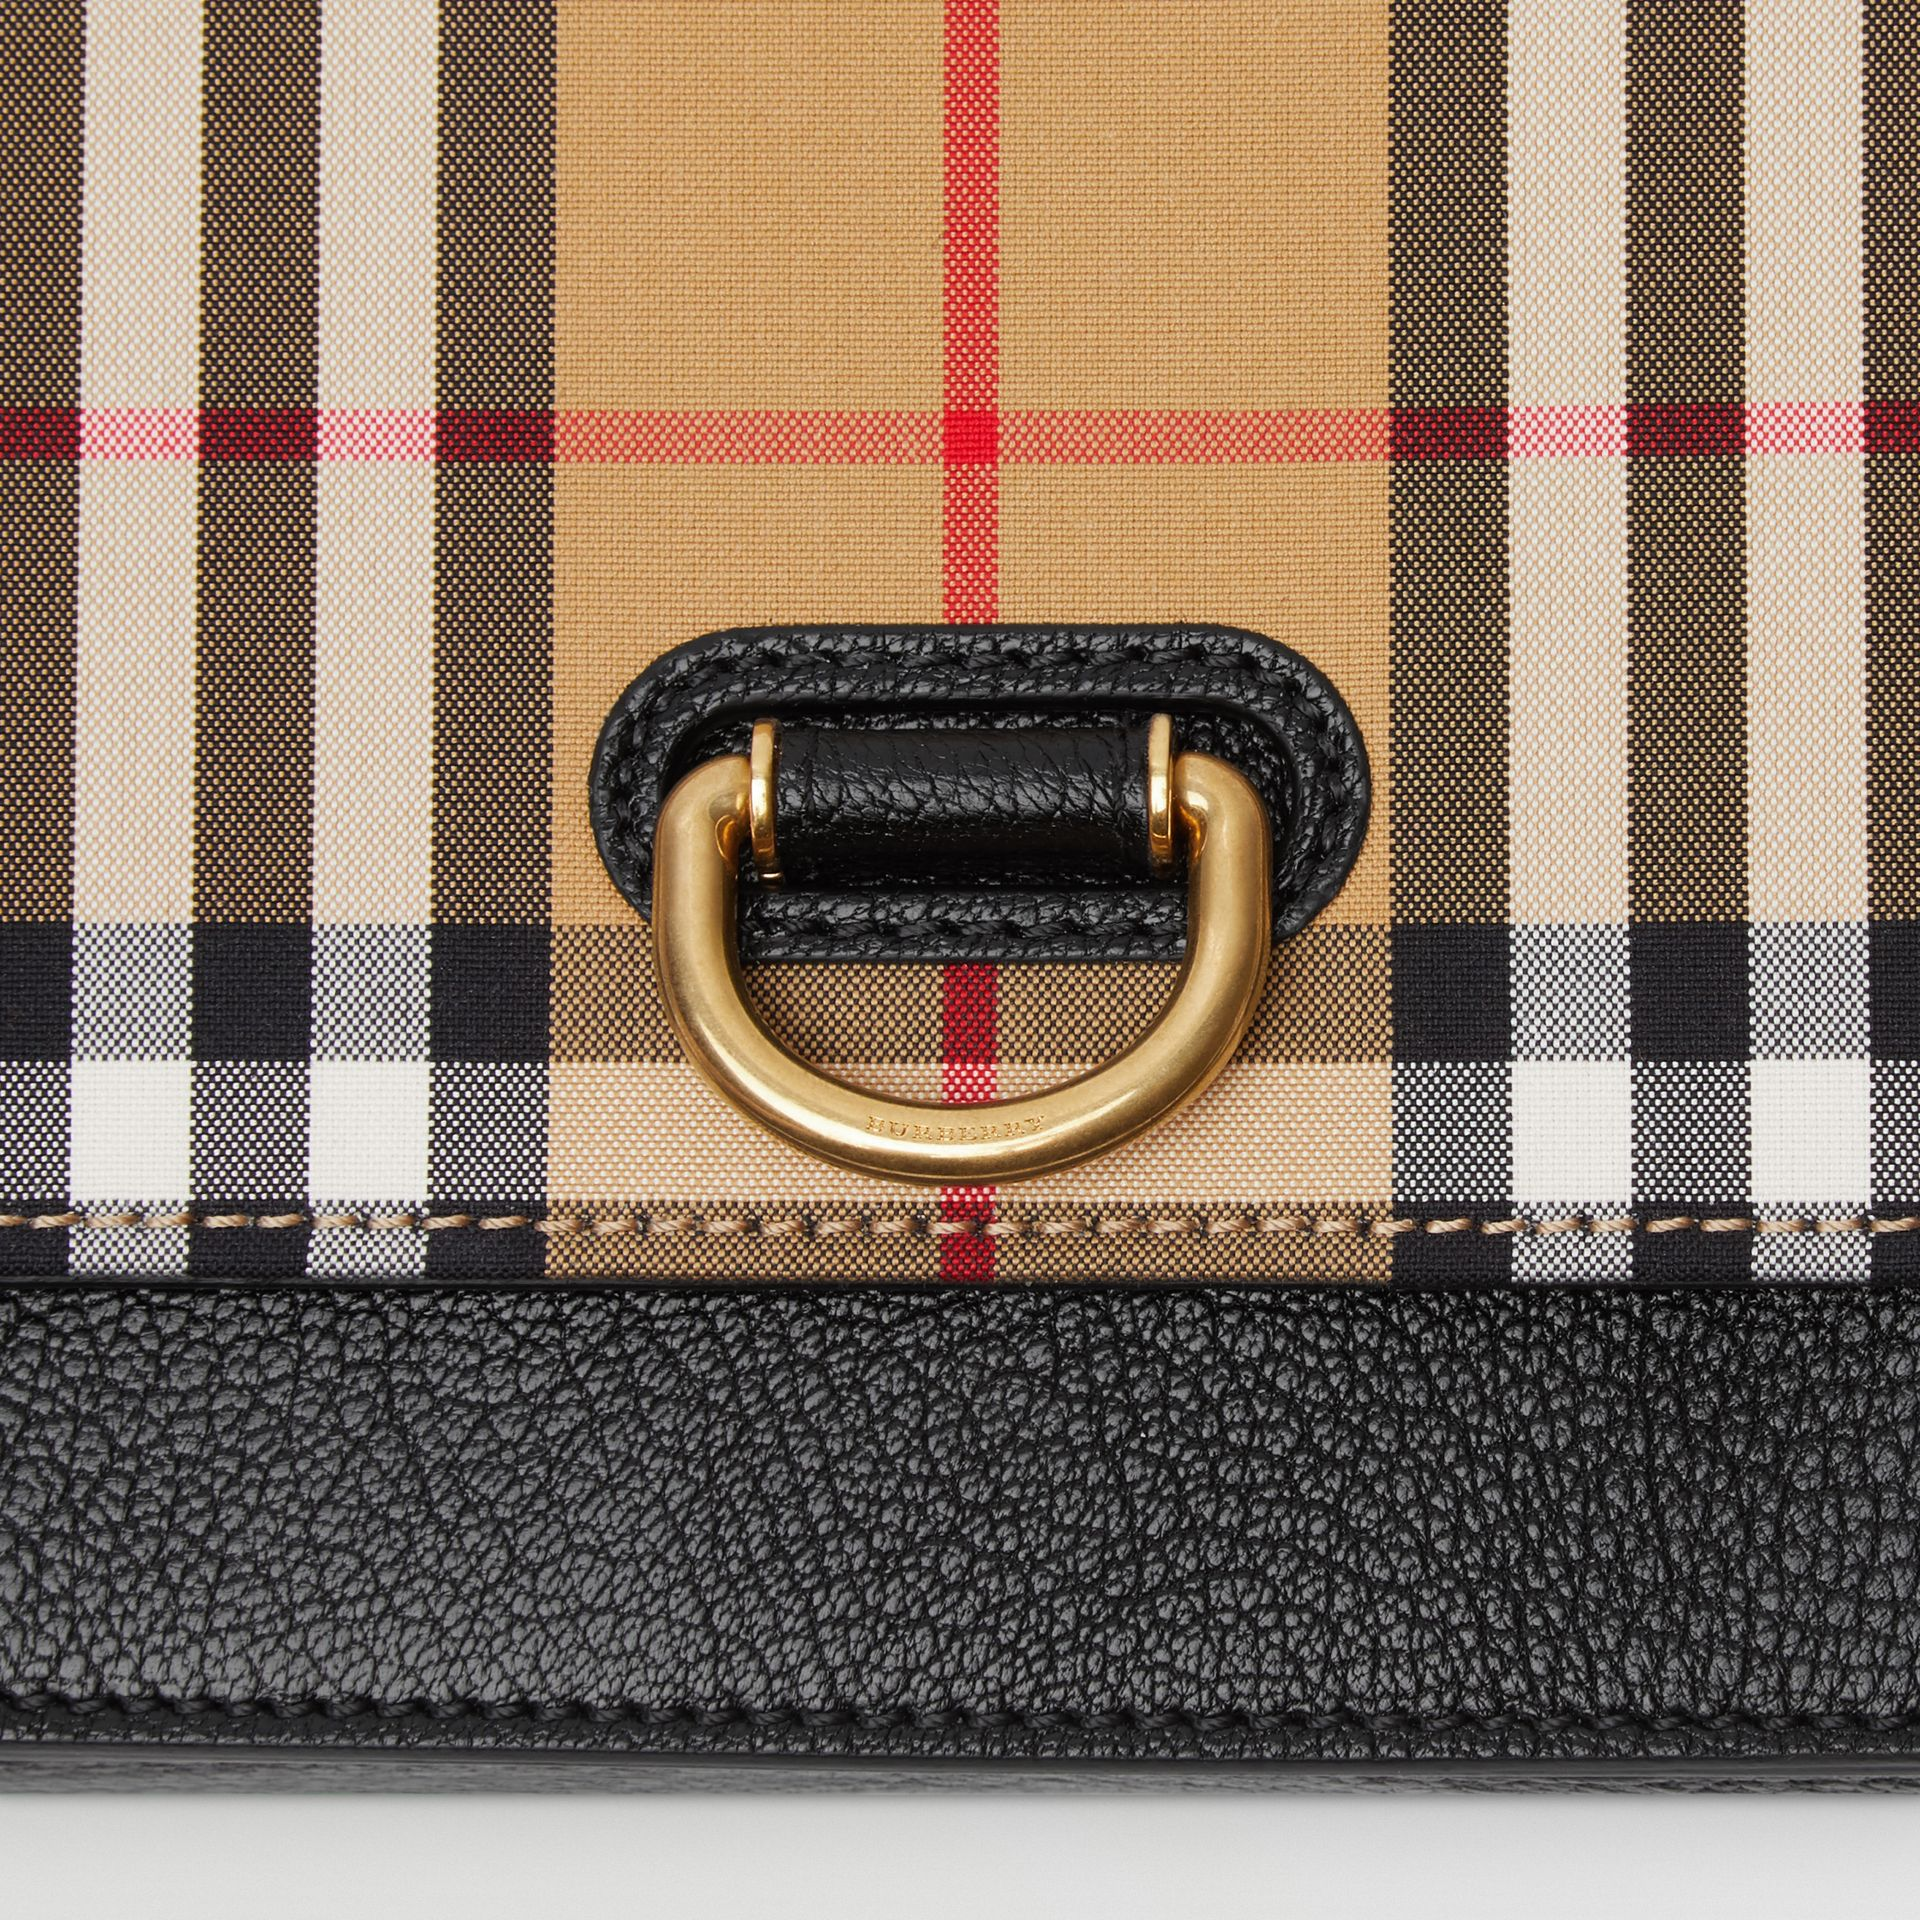 The Mini Vintage Check and Leather D-ring Bag in Black - Women | Burberry - gallery image 1